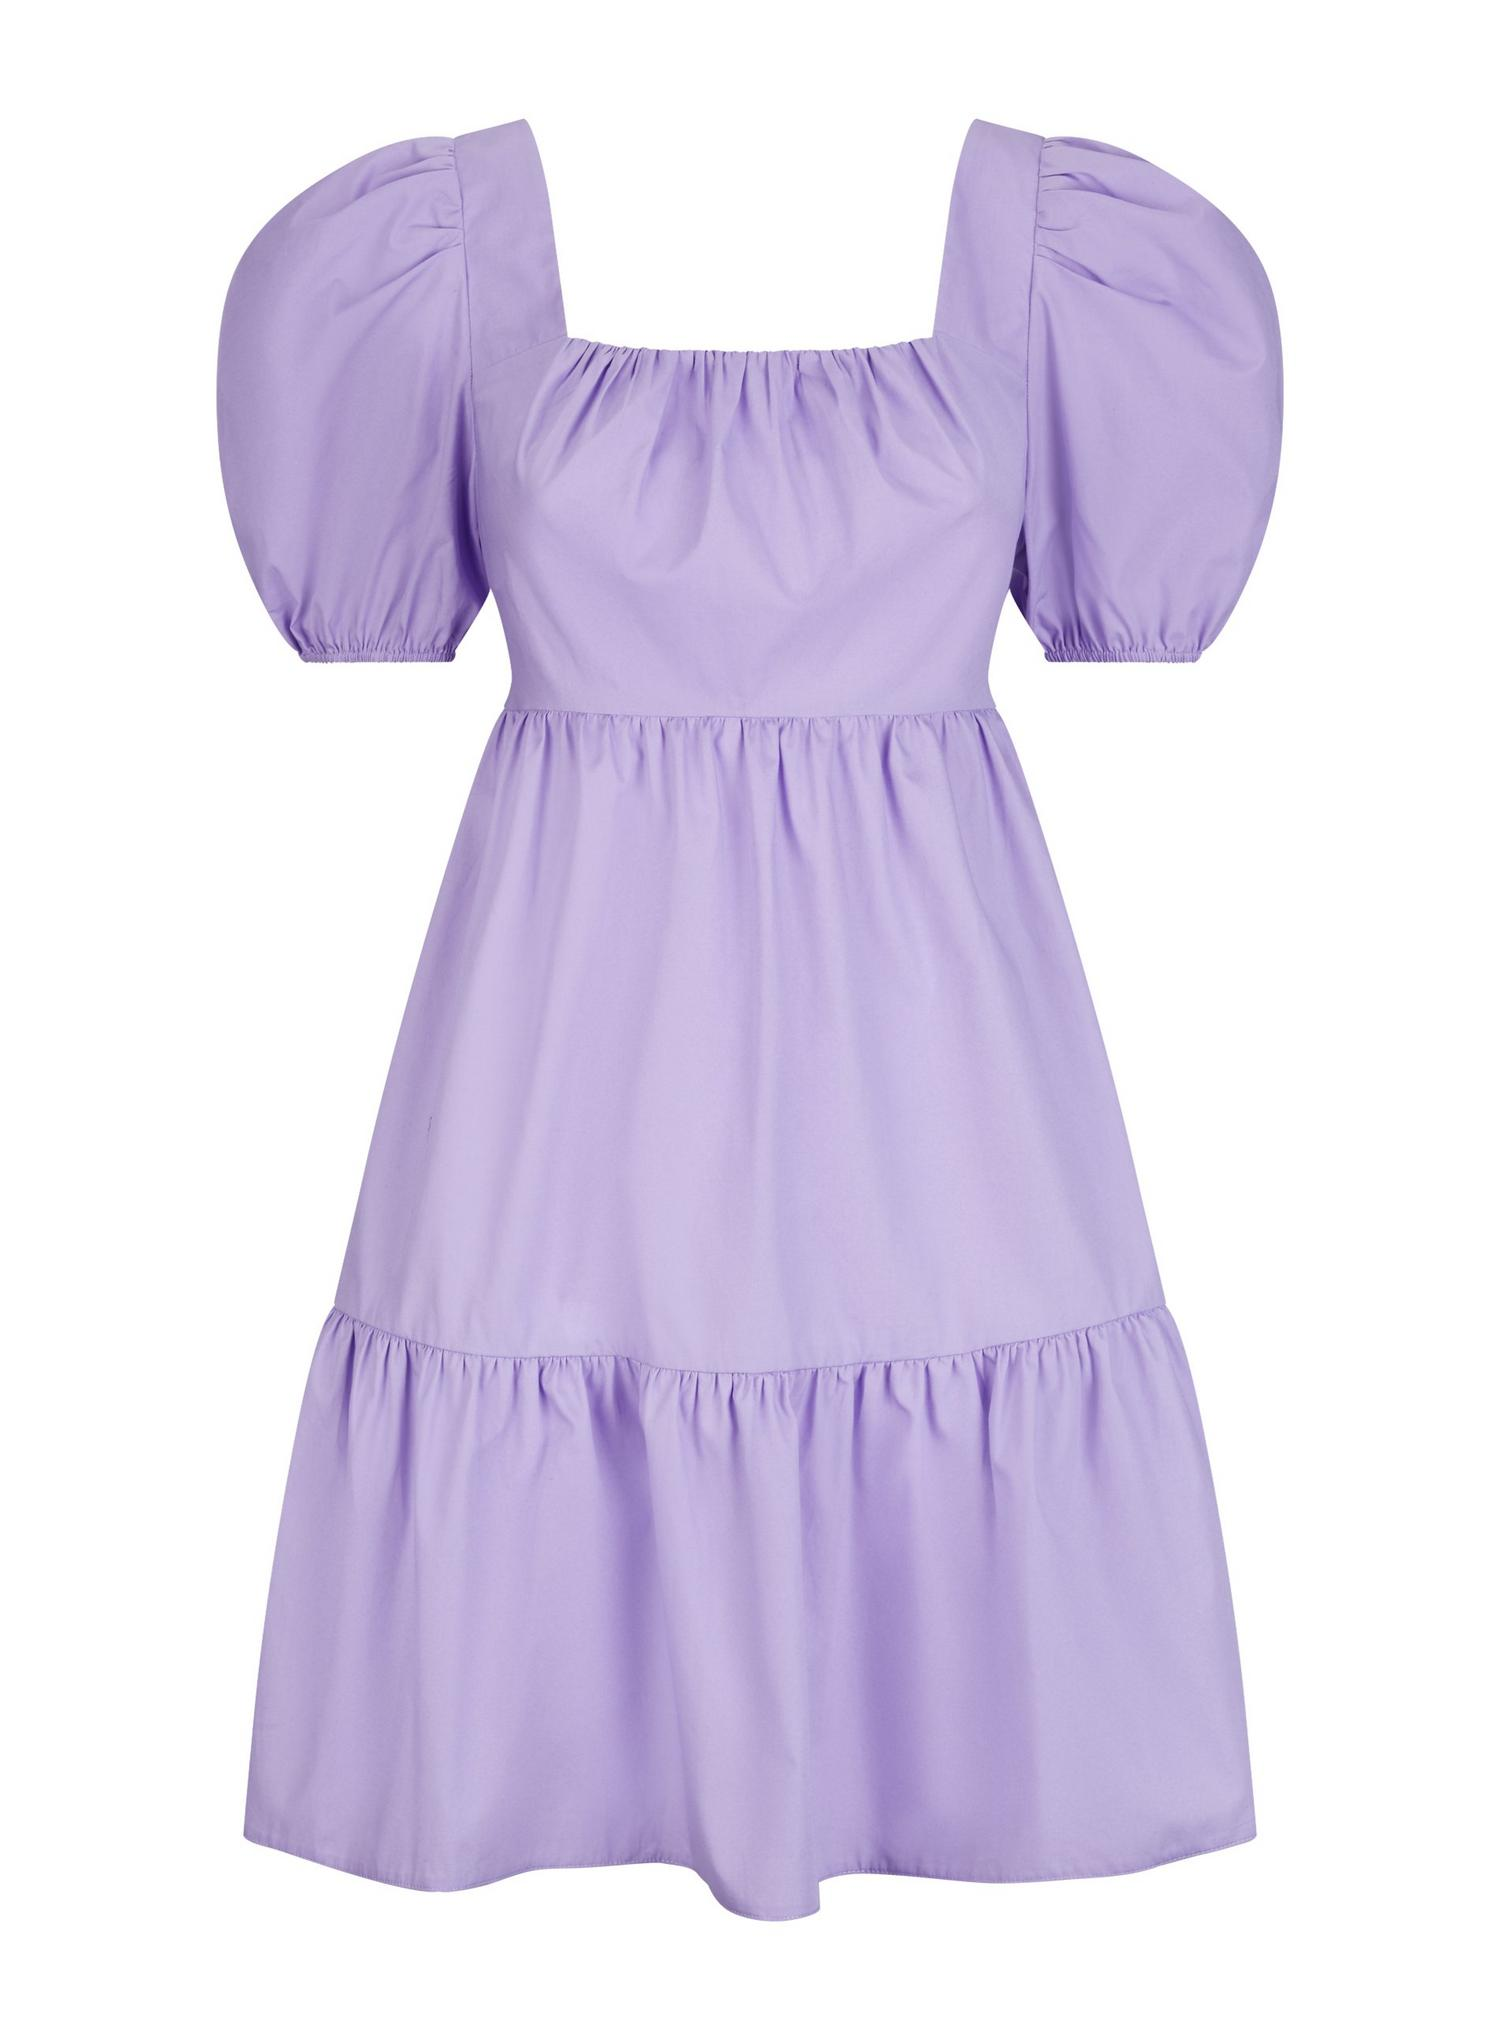 156 Lilac Cotton Smock Dress image number 2